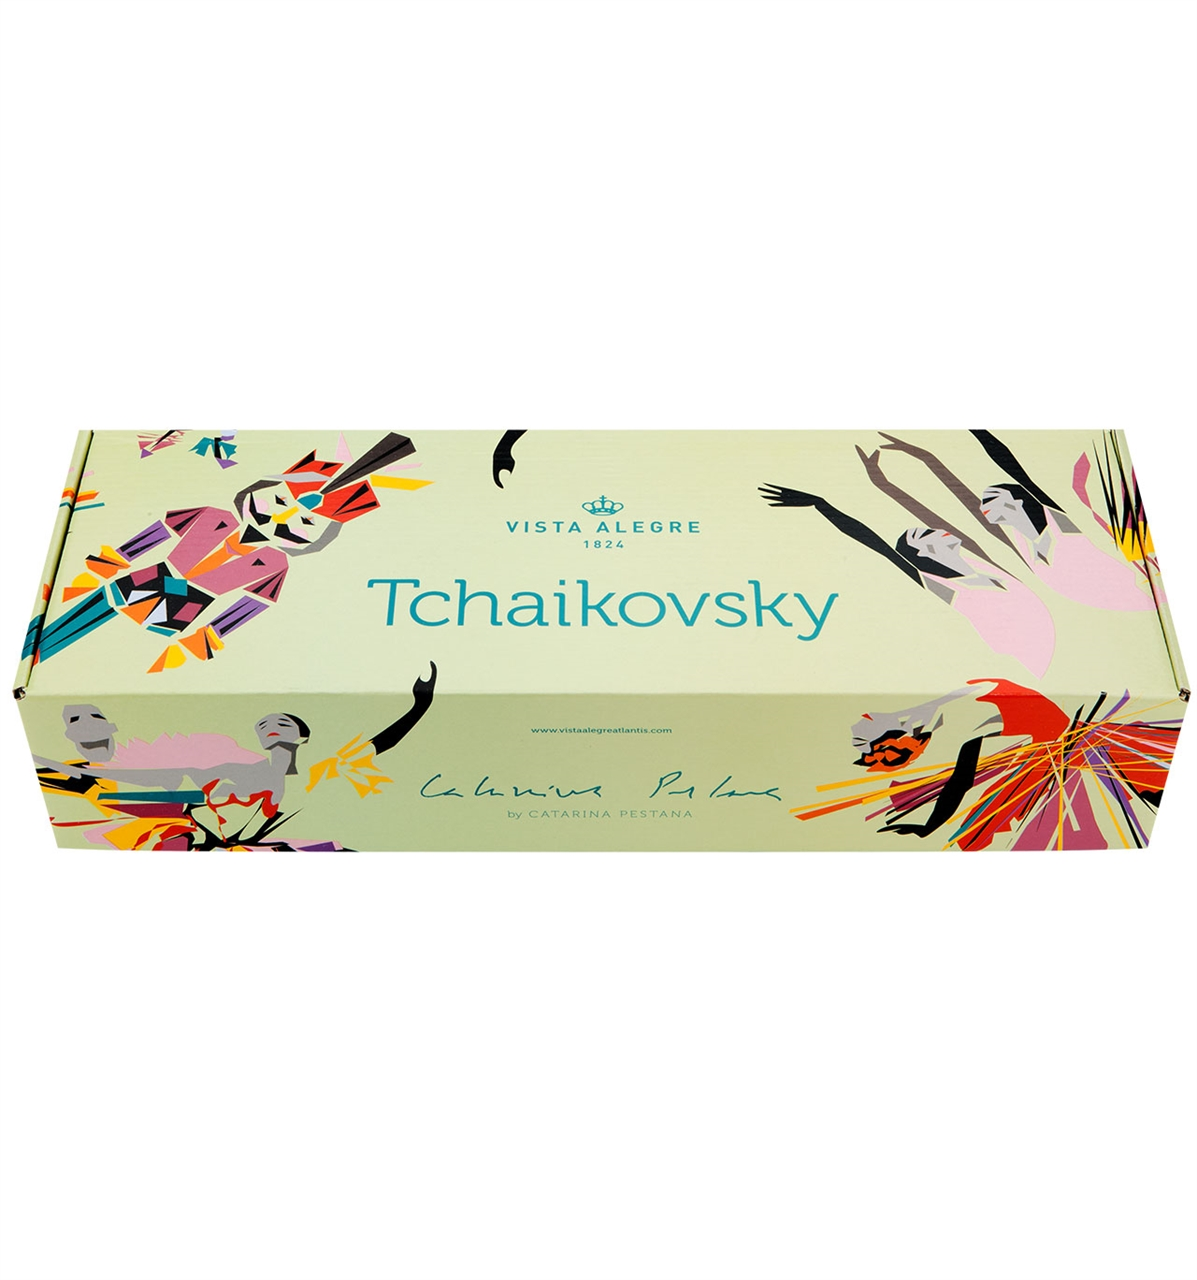 Vista Alegre Collection Tchaikovsky set 4 coffee cups and saucers